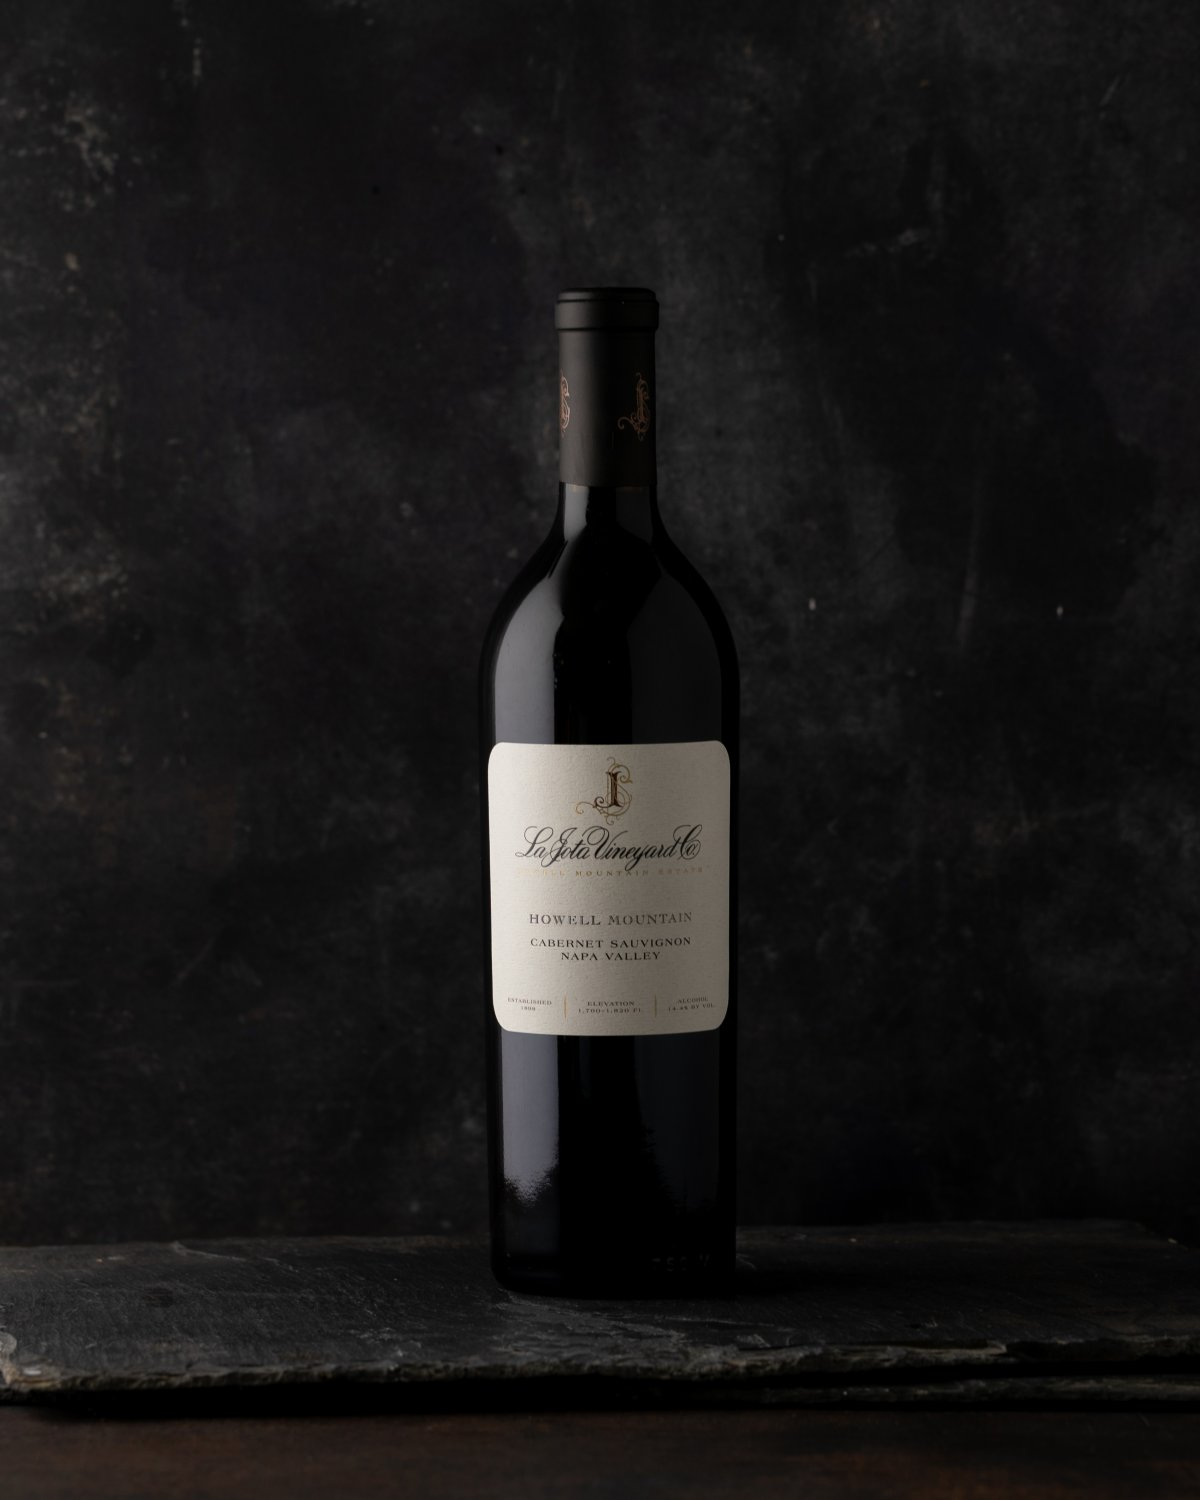 2015 La Jota Howell Mountain Cabernet Sauvignon